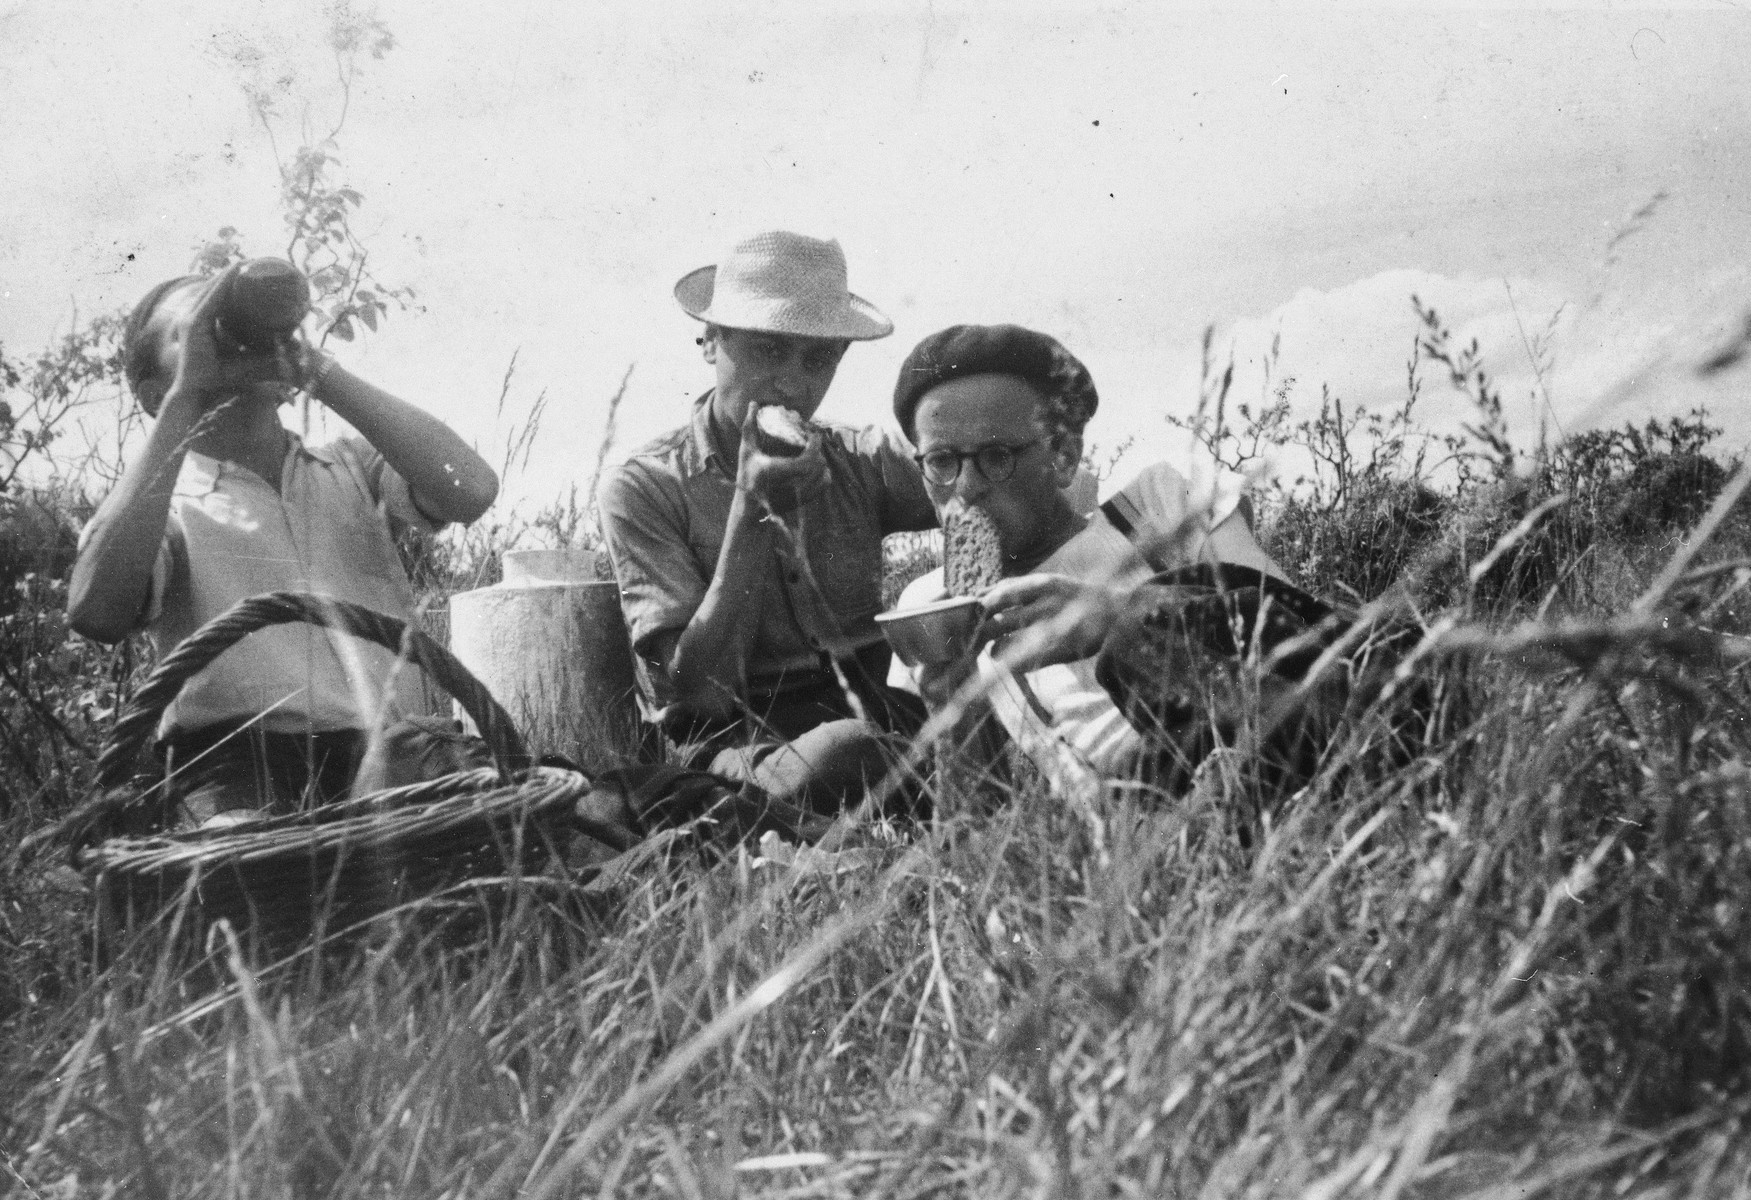 Three Jewish youths, who are living in hiding on a farm in Taluyers, eat a meal while sitting in a field.